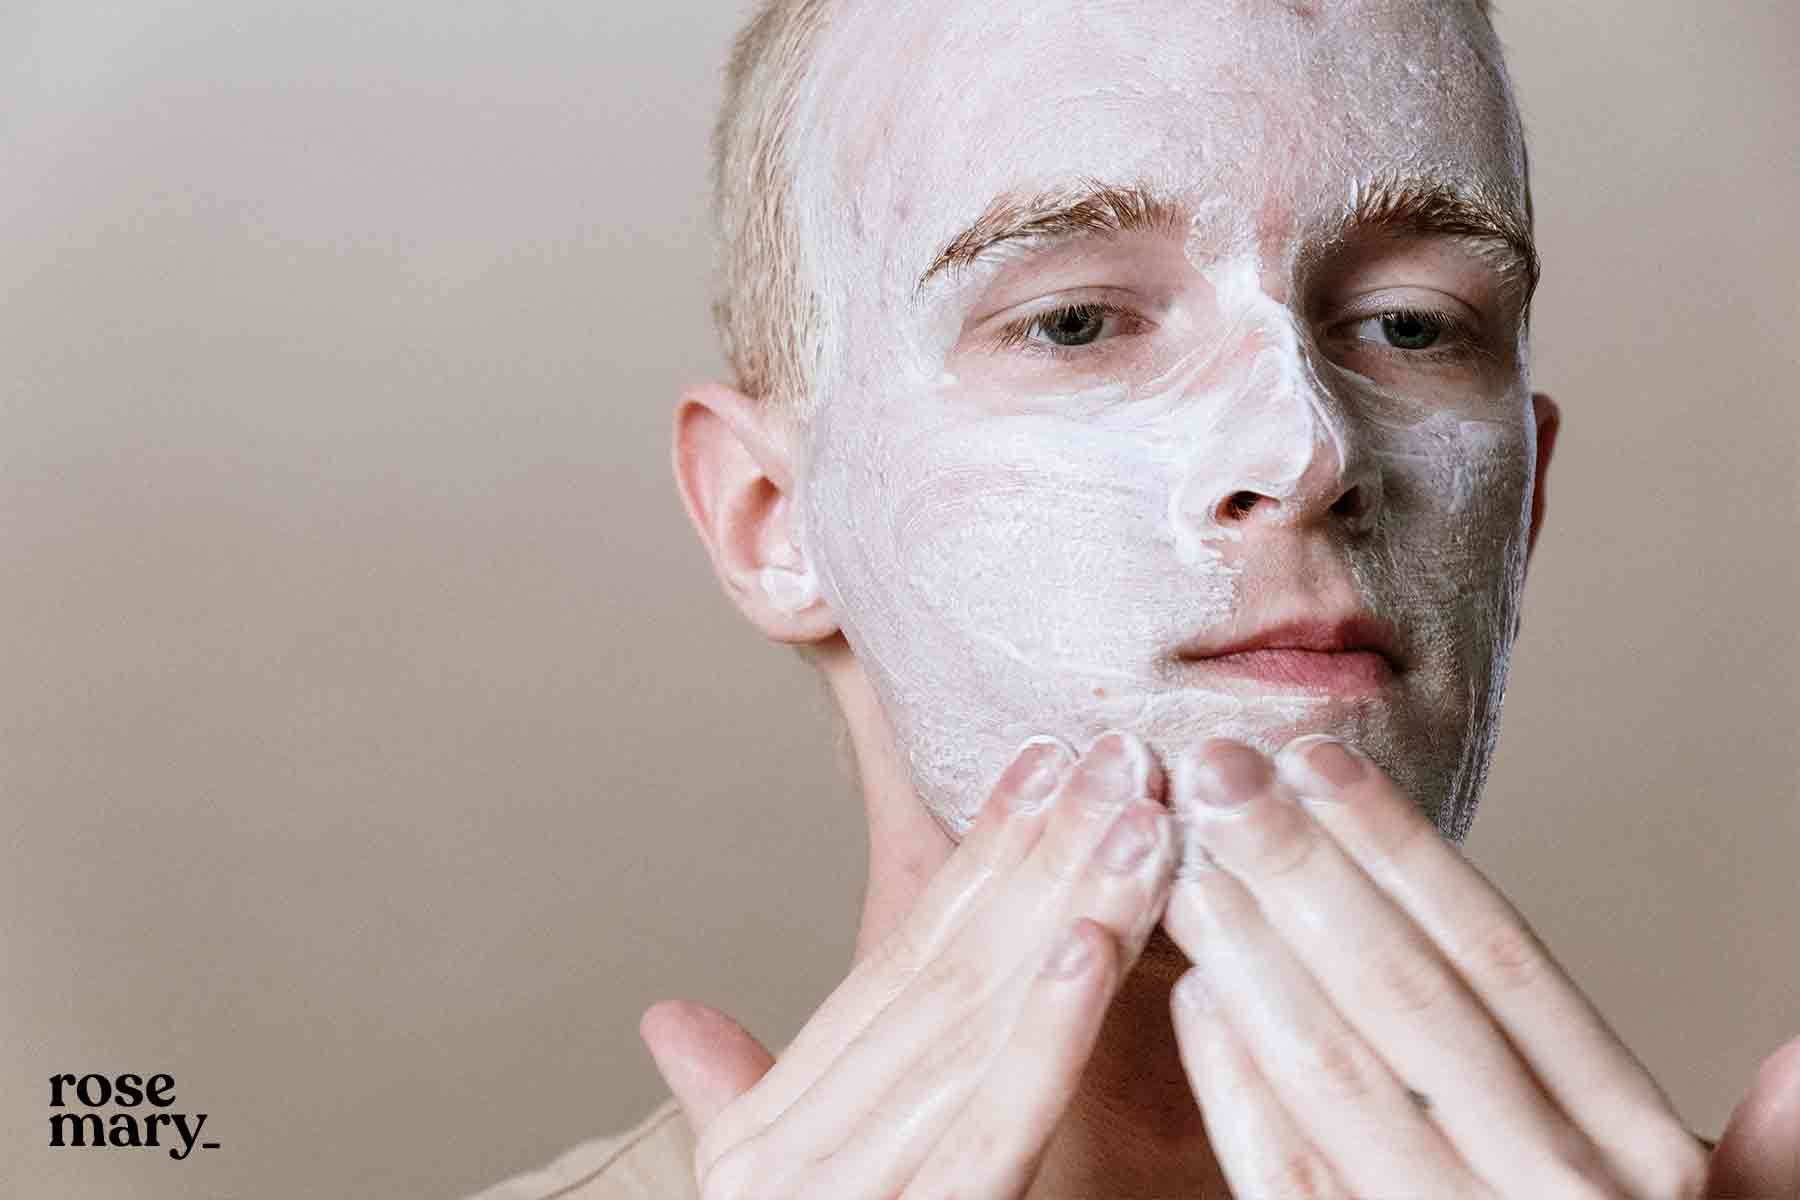 How to apply acne creams